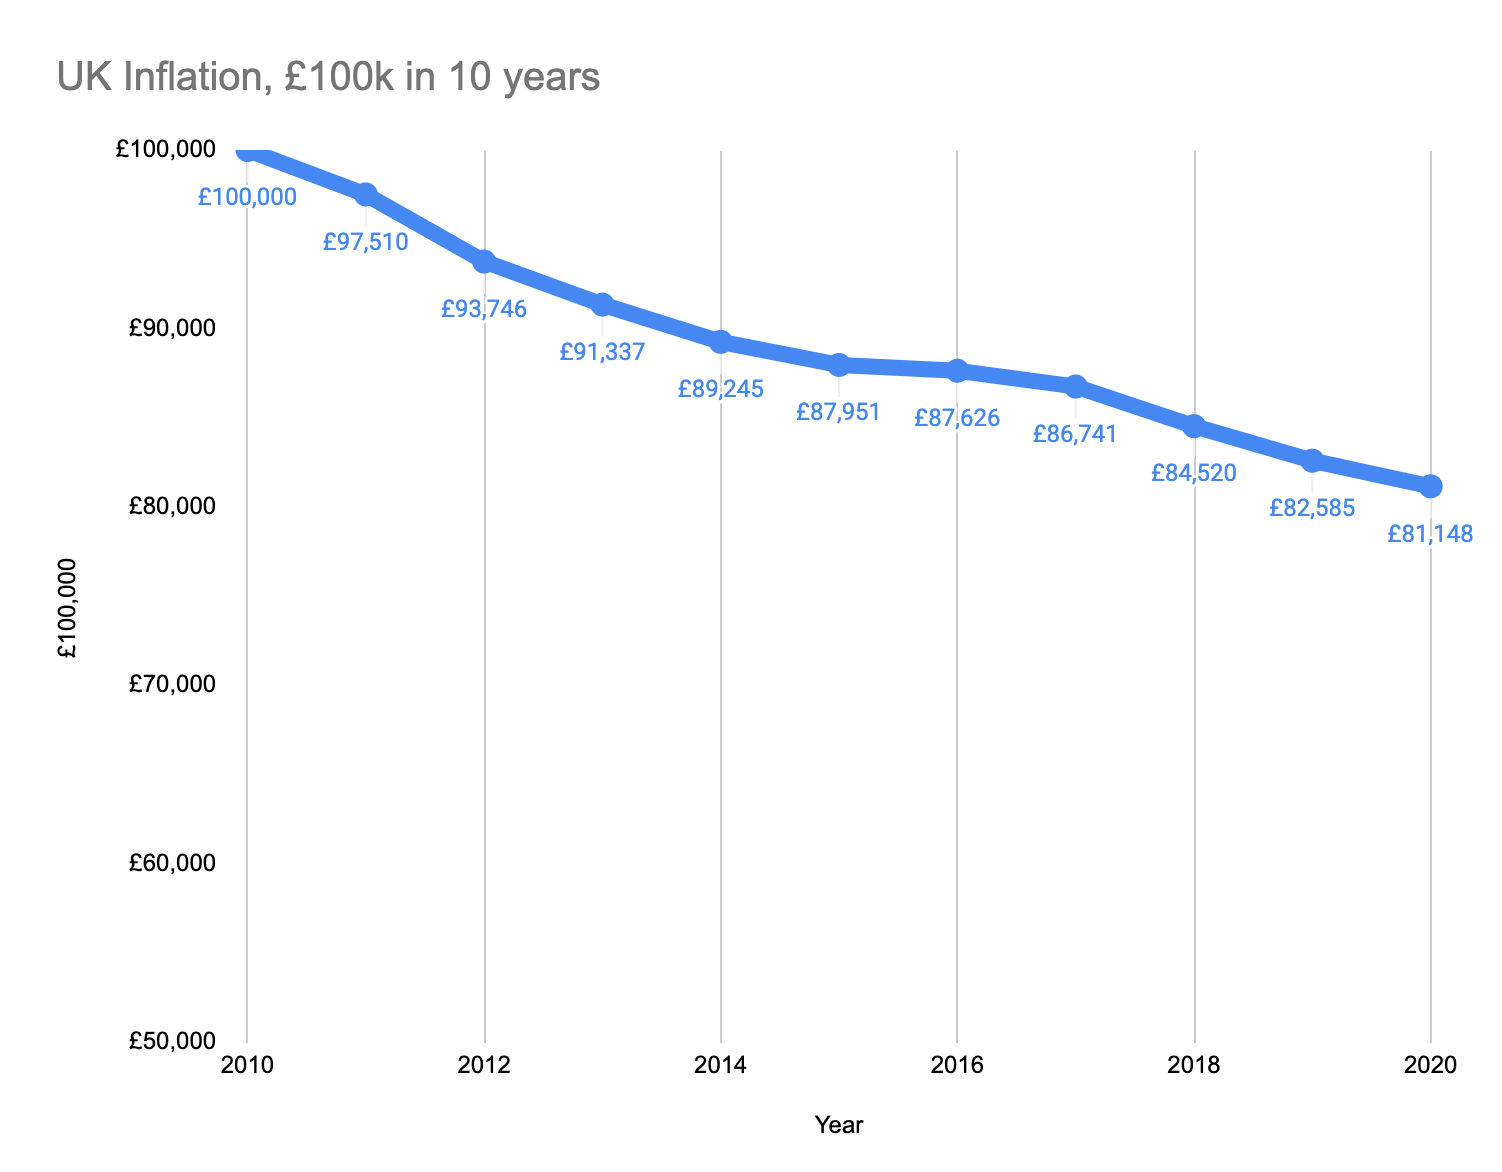 real value of £100,000 2010-2020